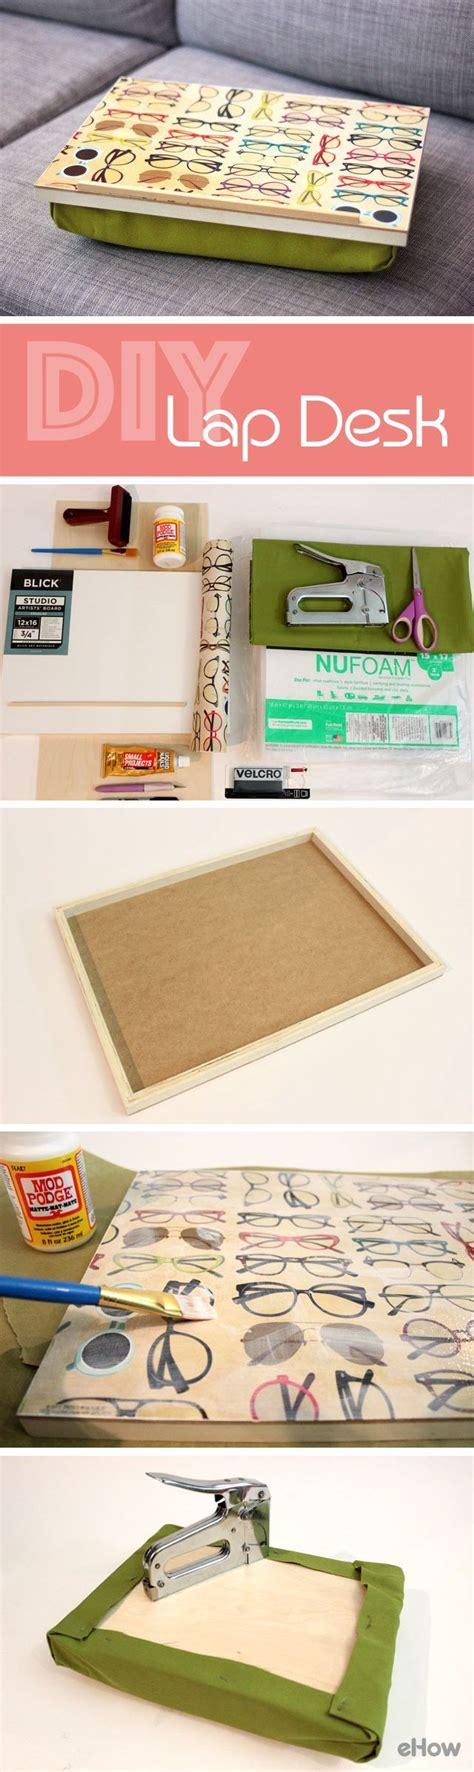 make a lap desk how to make a pillow lap desk lap desk high